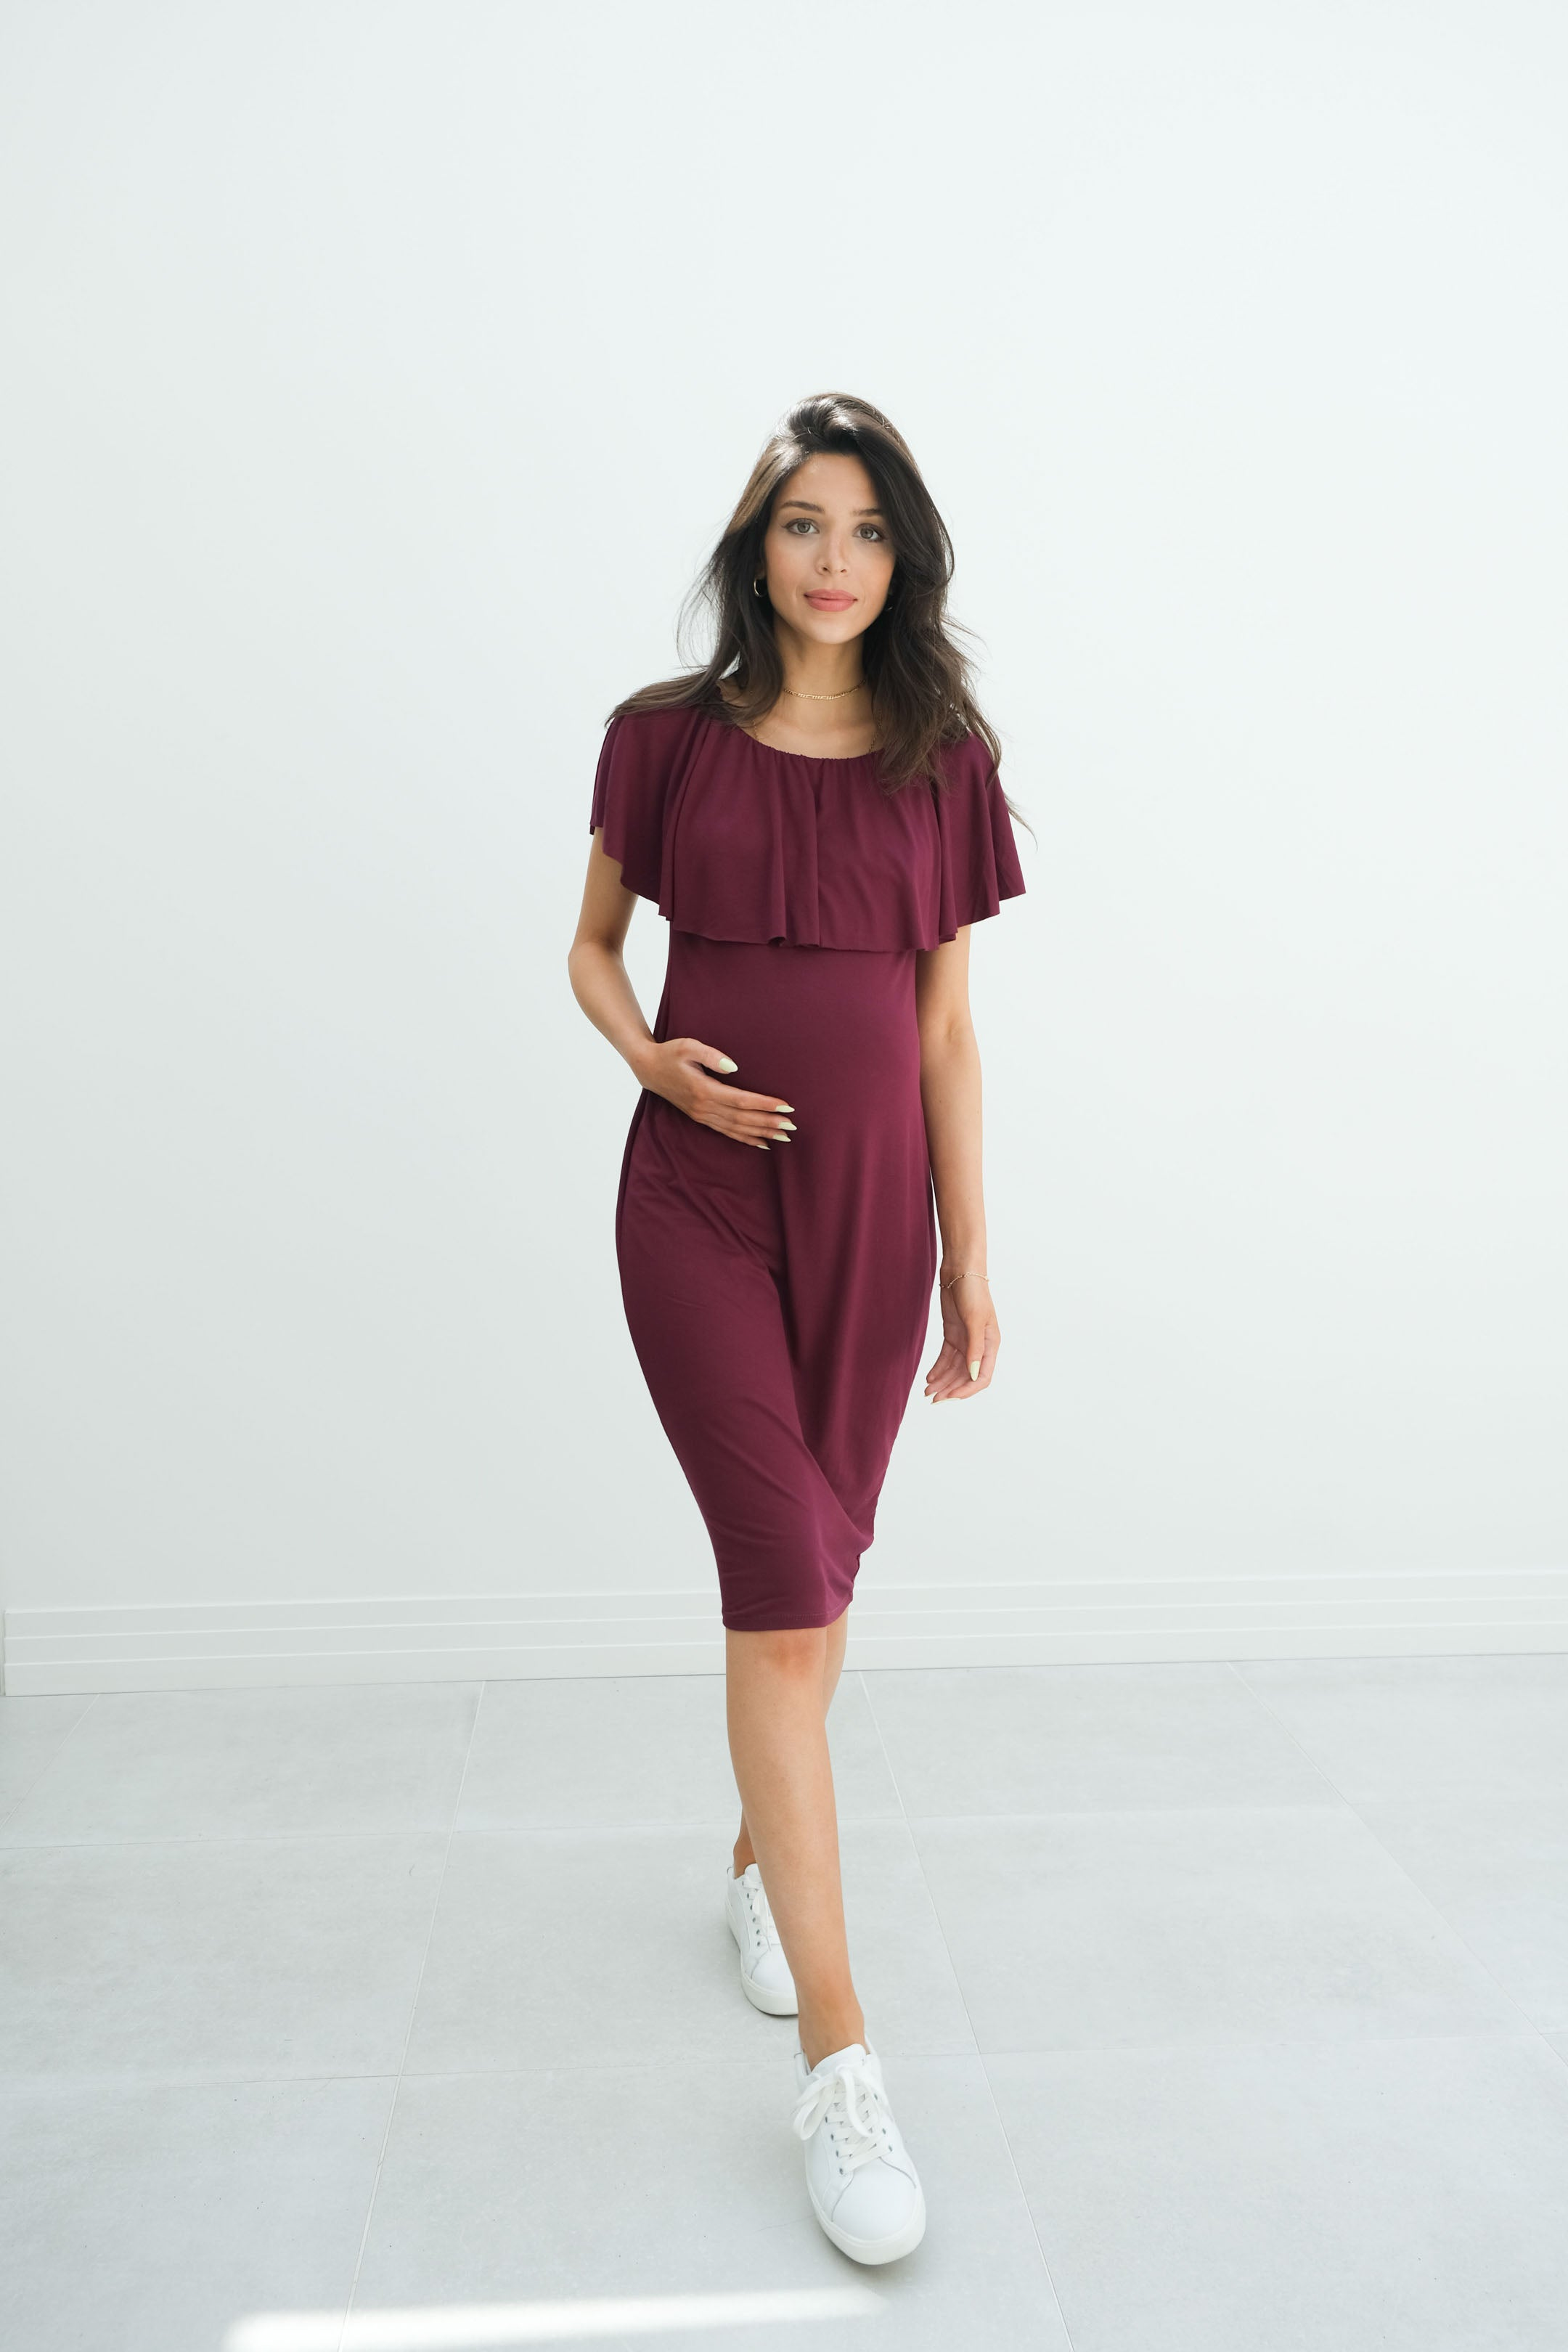 a lady wearing a burgundy pregnancy dress called melody